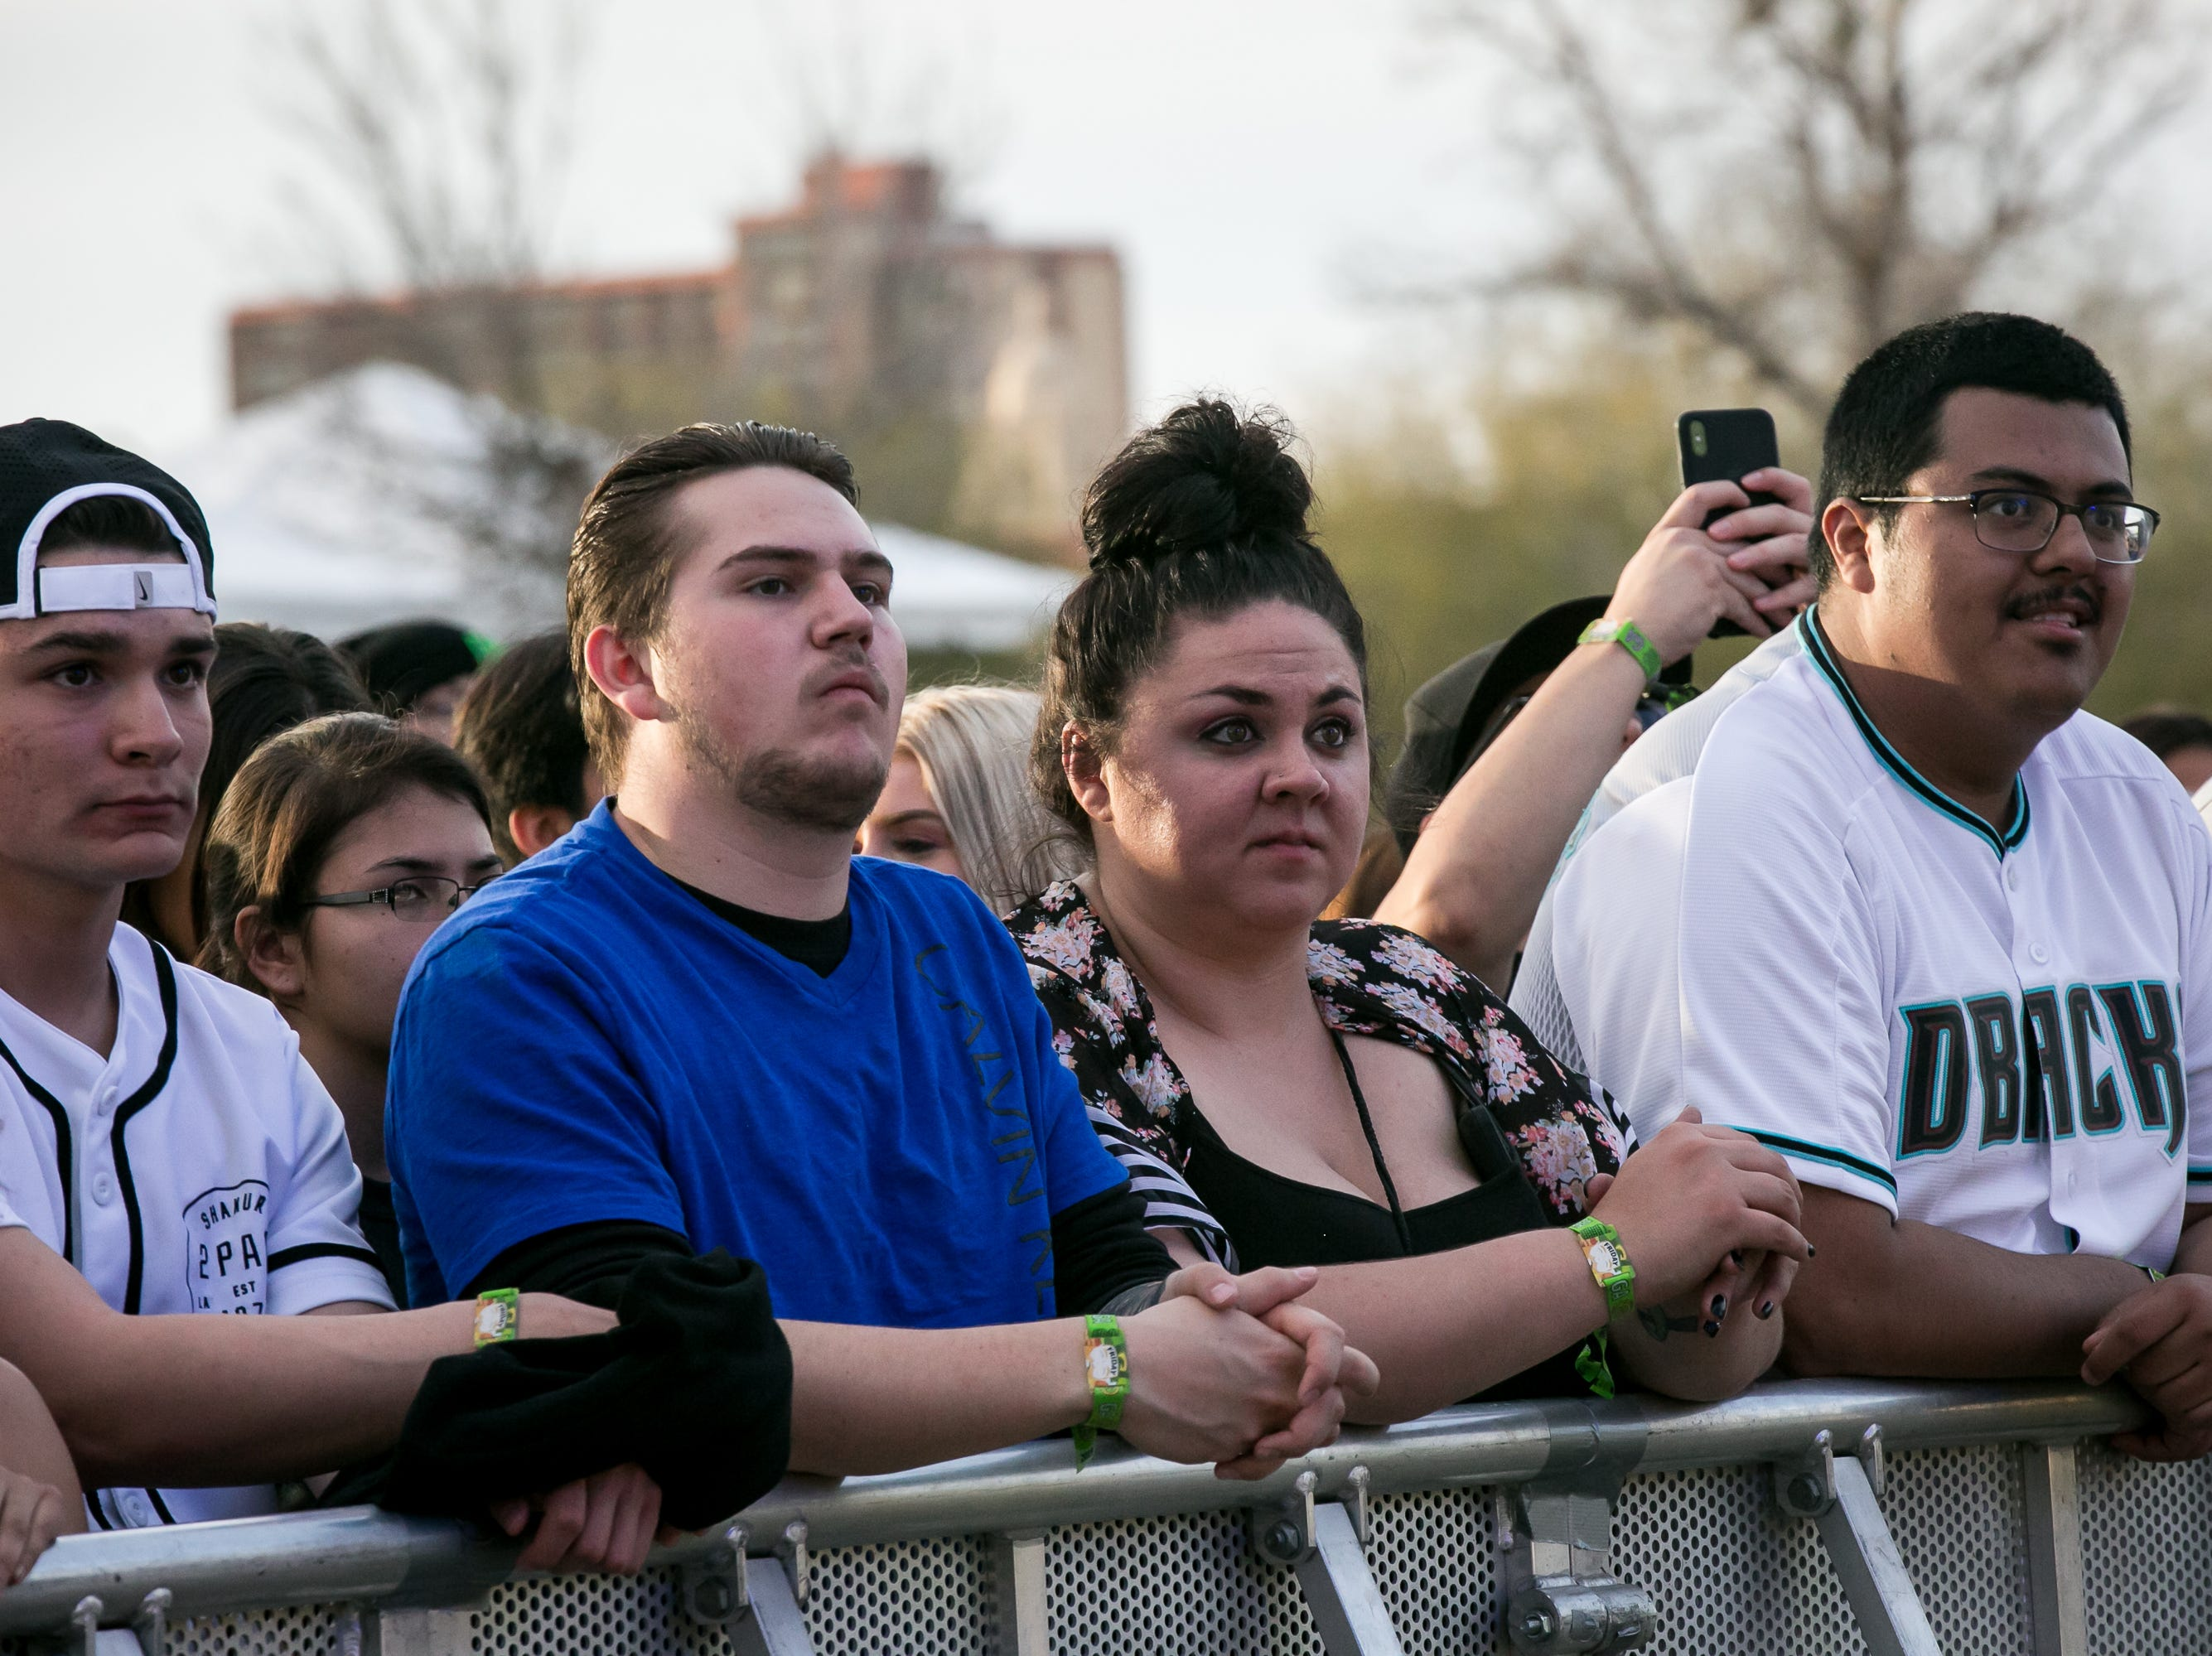 There were long wait times at Pot of Gold Music Festival at Steele Indian School Park on Friday, March 15, 2019.